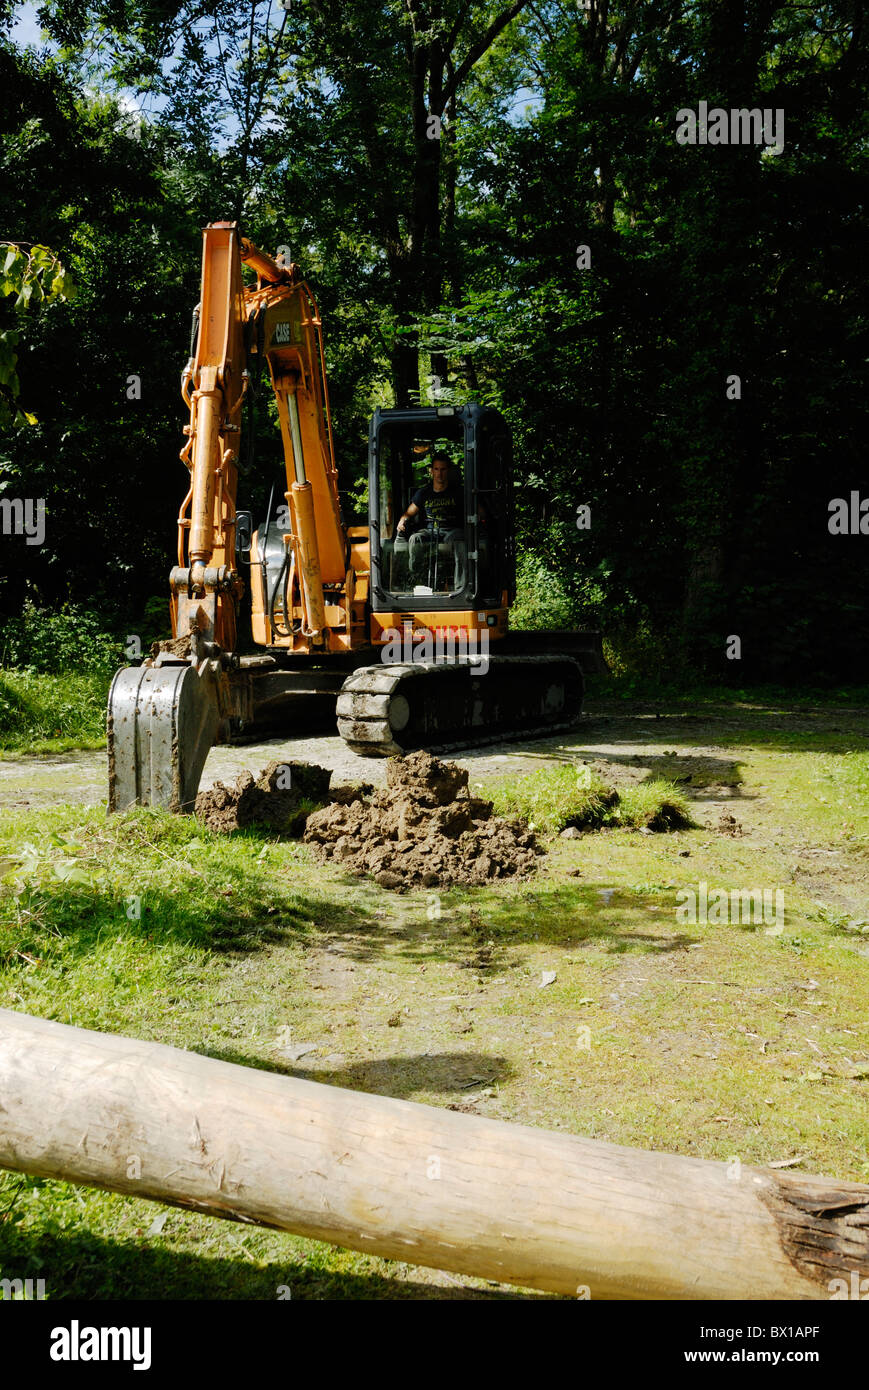 Tracked excavating machine digging a hole for a gatepost in woodland, Wales. - Stock Image